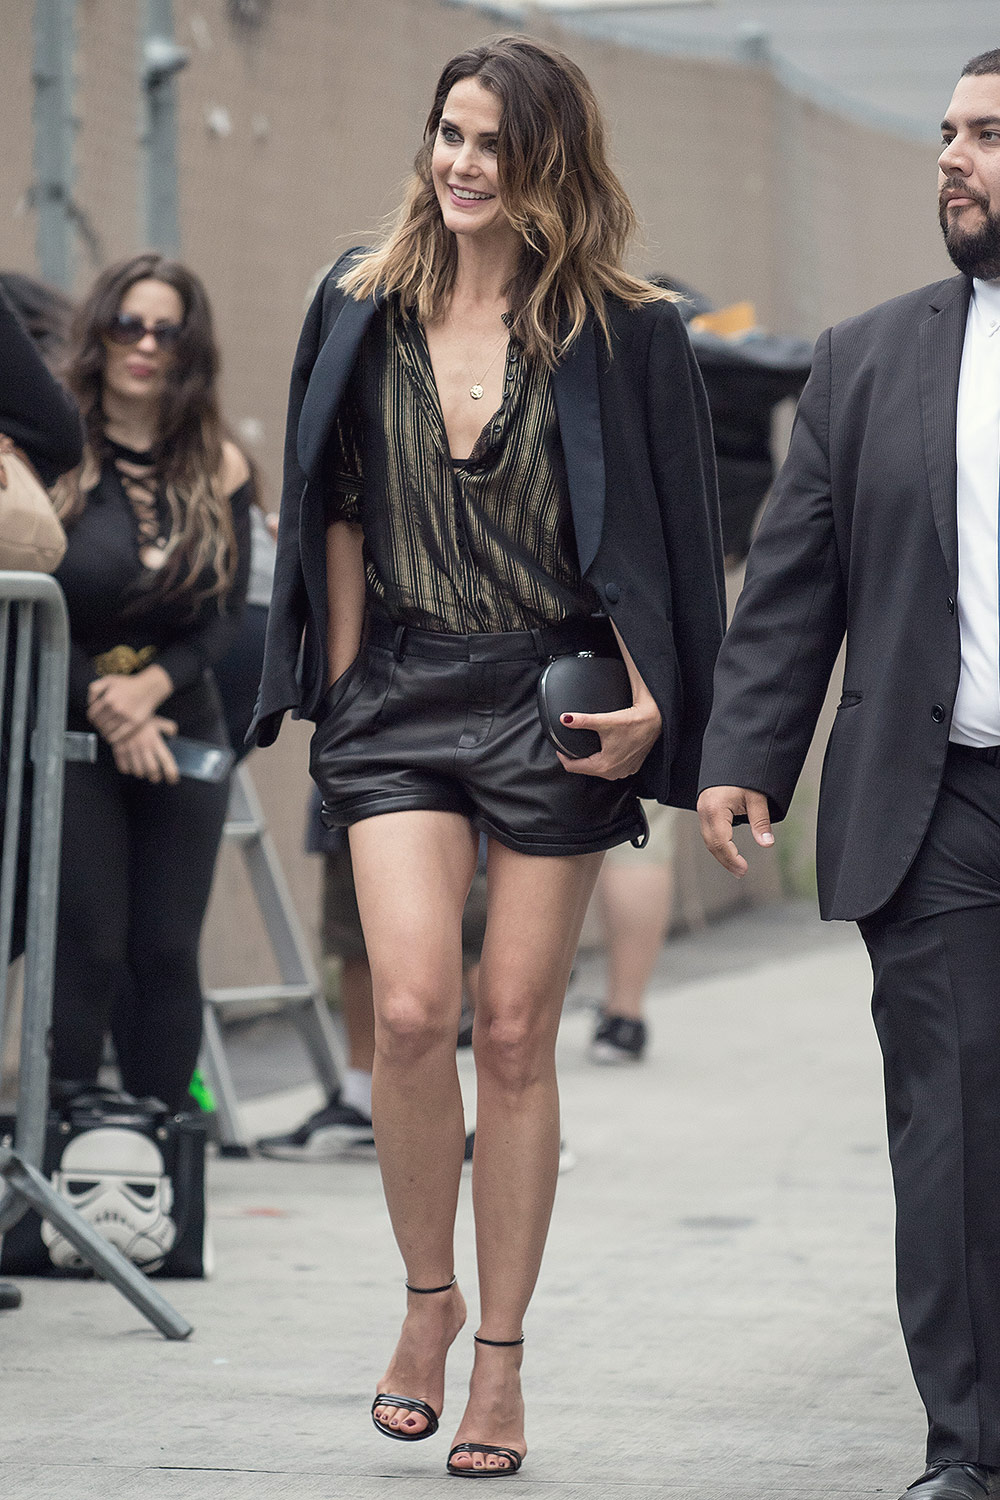 Keri Russell arriving at Jimmy Kimmel Live